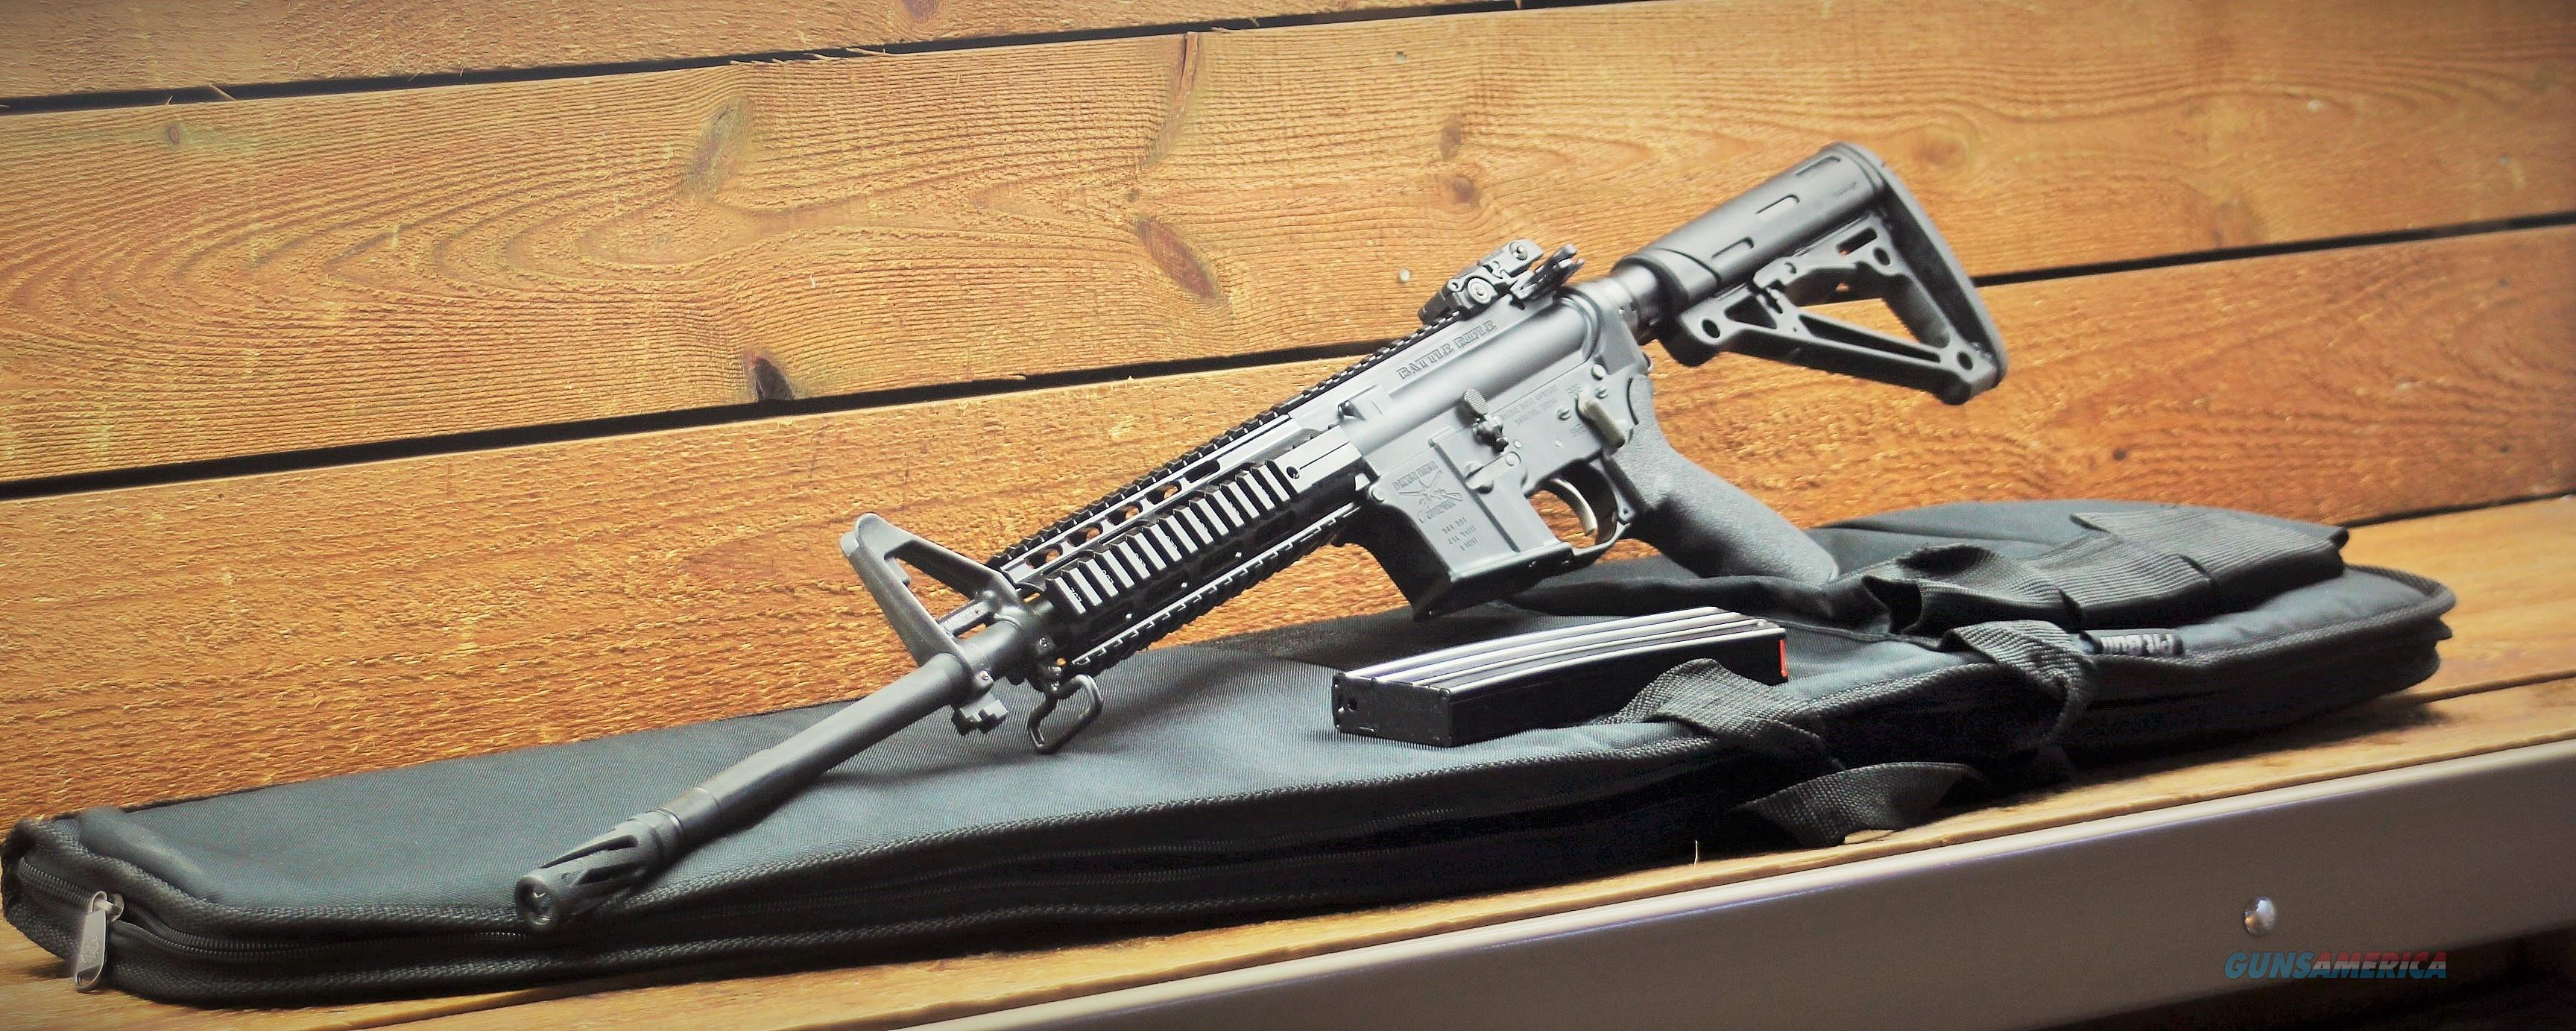 EASY PAY Sale $84 Down layaway M4 BATTLE RIFLE SPARTAN W soft case 5 56 MM  2 23 rem with 16